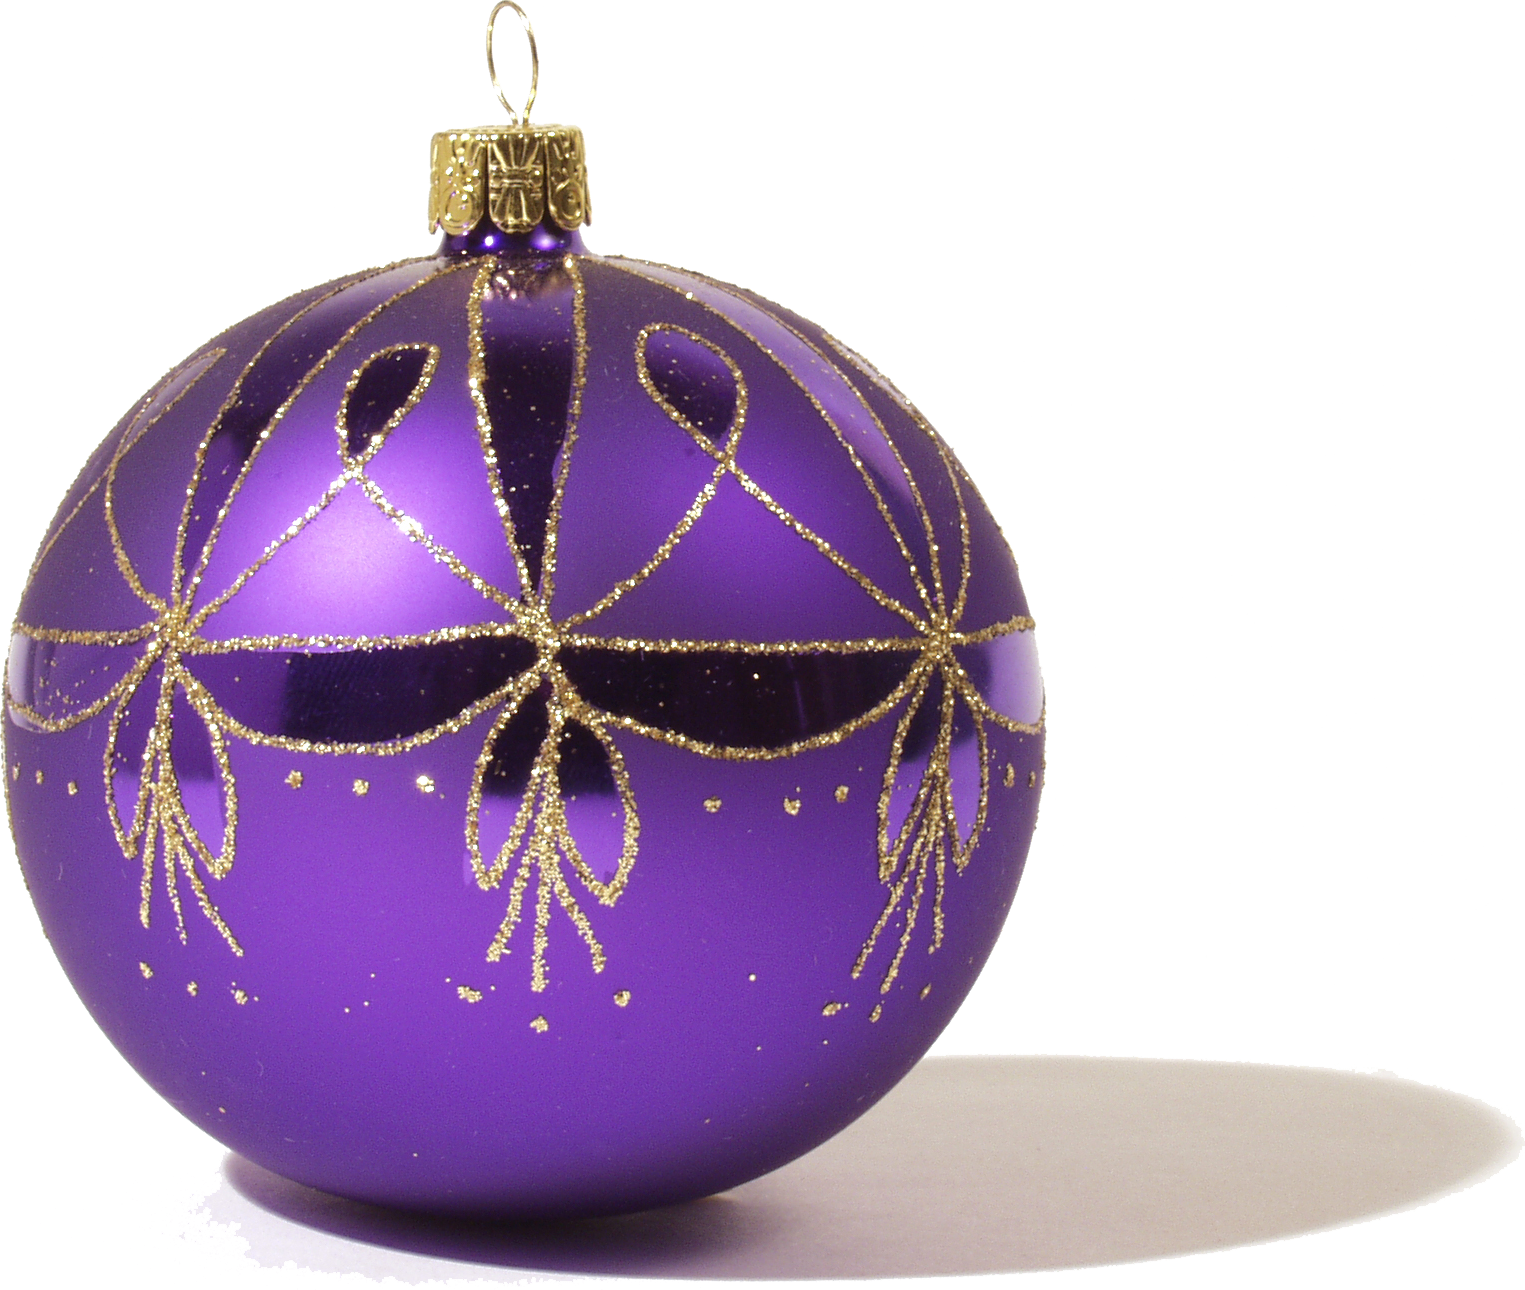 clip free download purple transparent christmas ornament #101881598